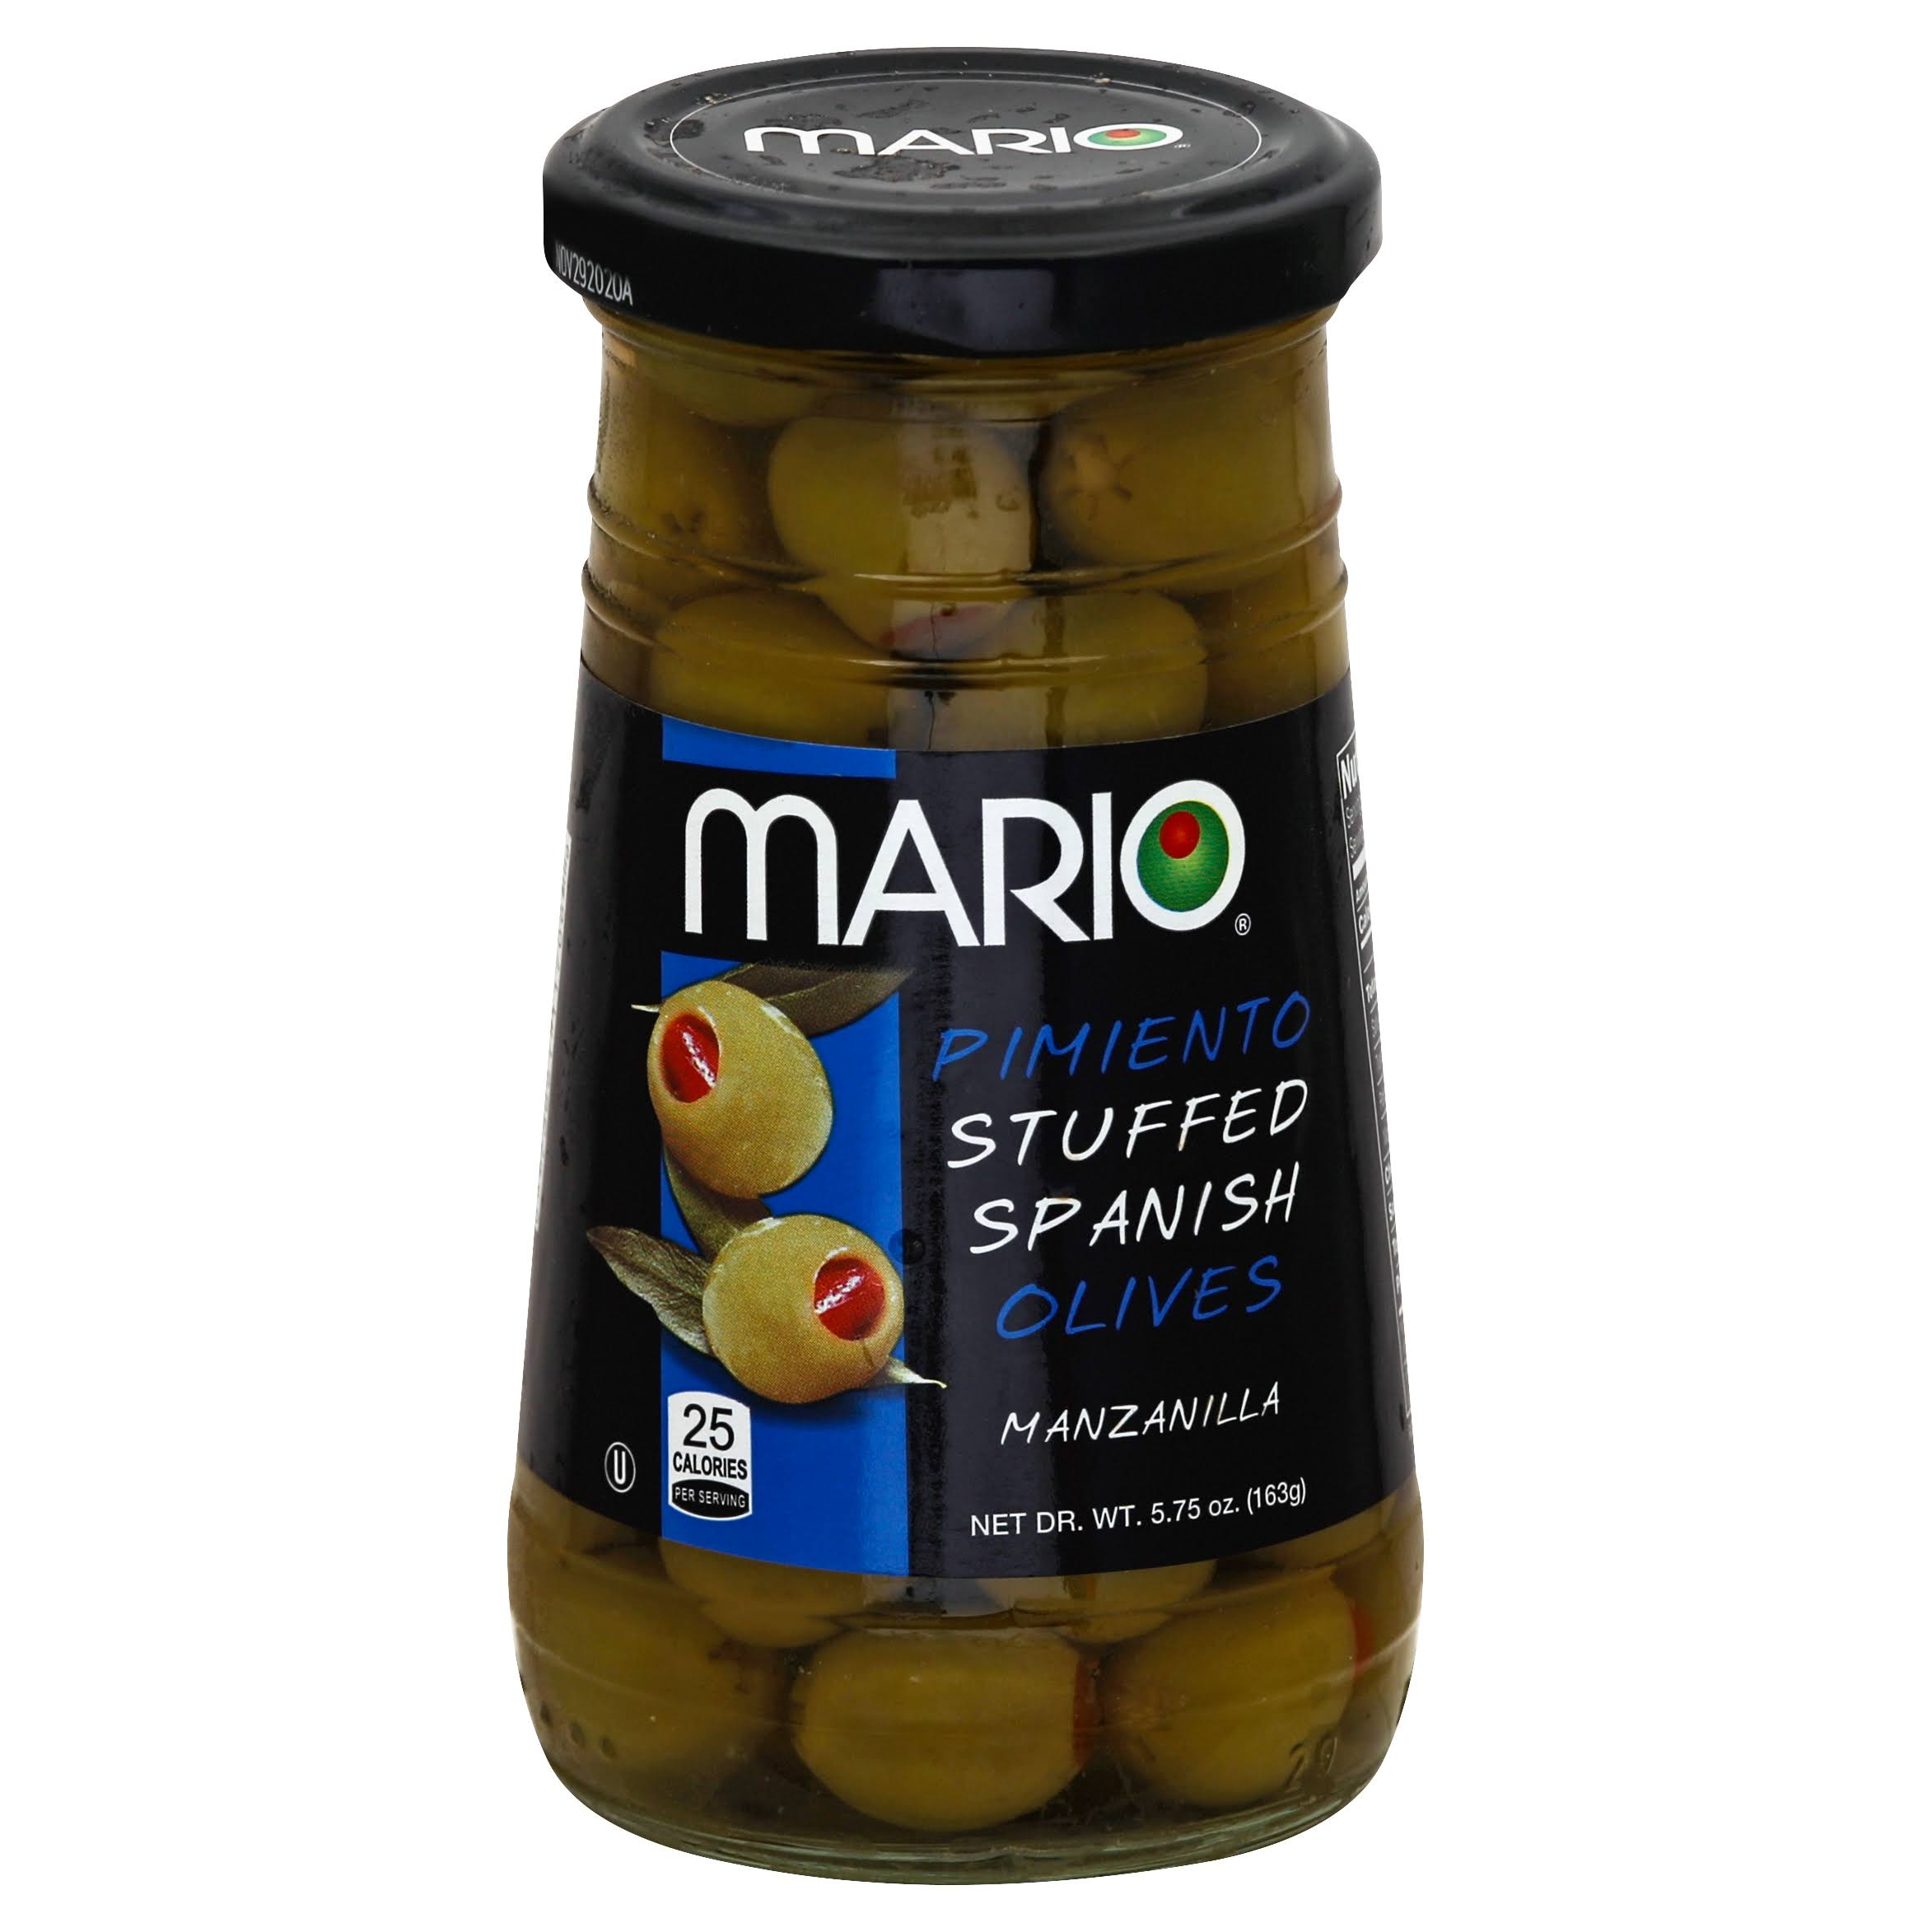 Mario Pimiento Stuffed Spanish Olives - 5.75 oz